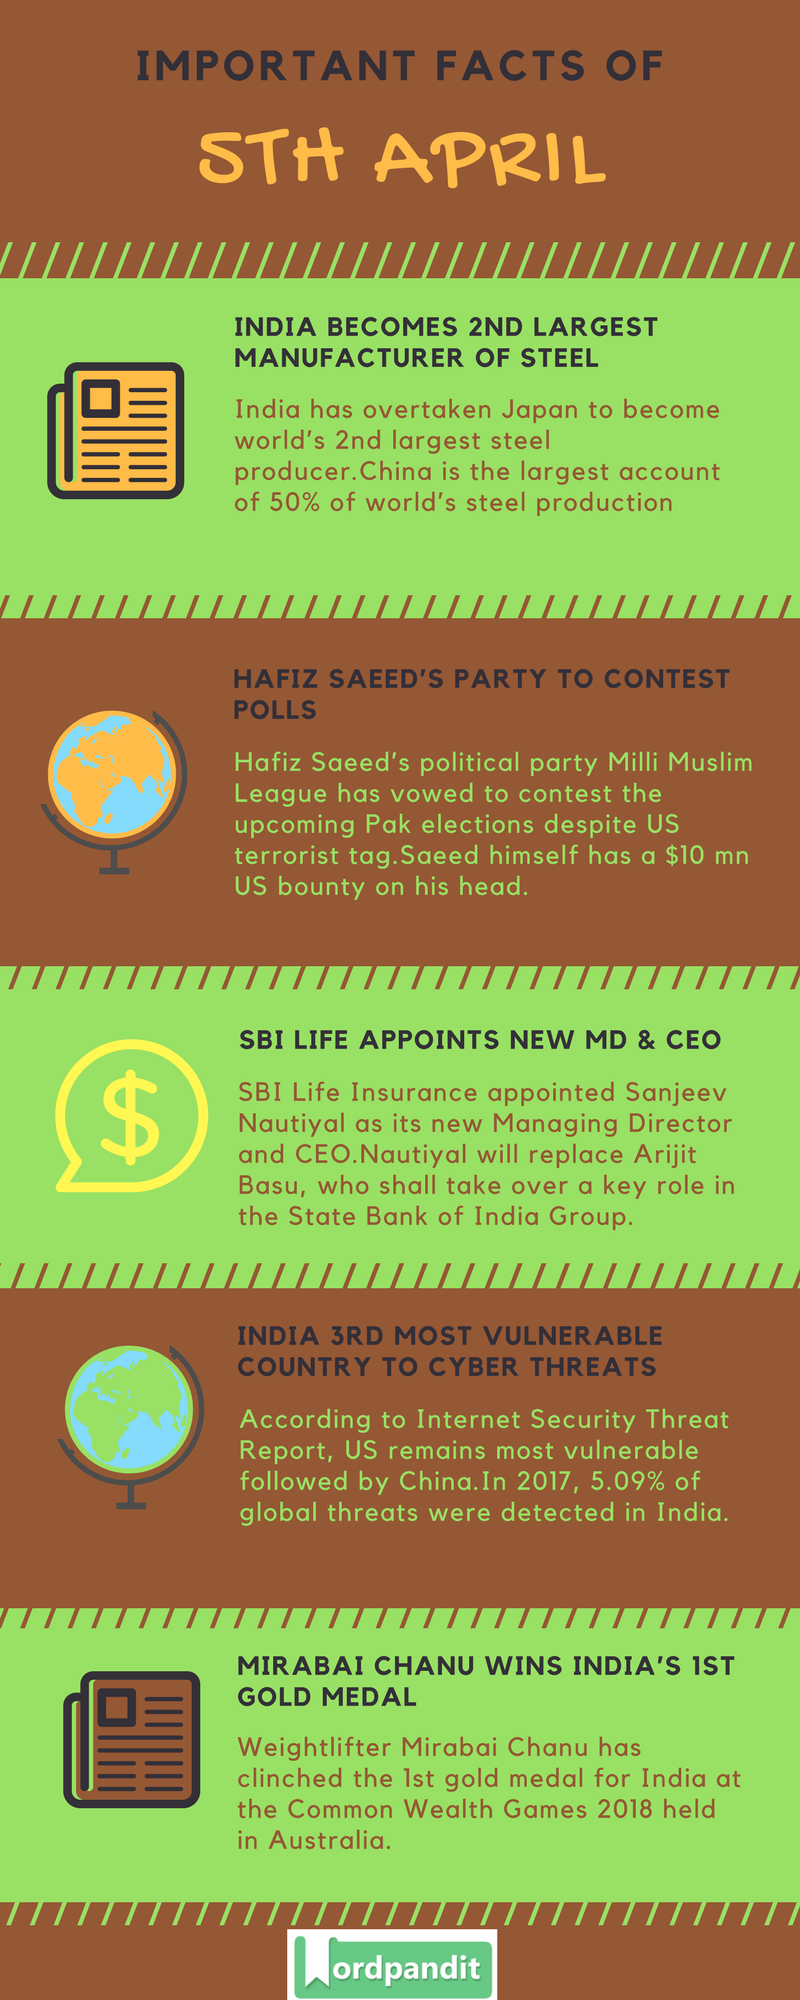 Daily Current Affairs 5 April 2018 Current Affairs Quiz April 5 2018 Current Affairs Infographic